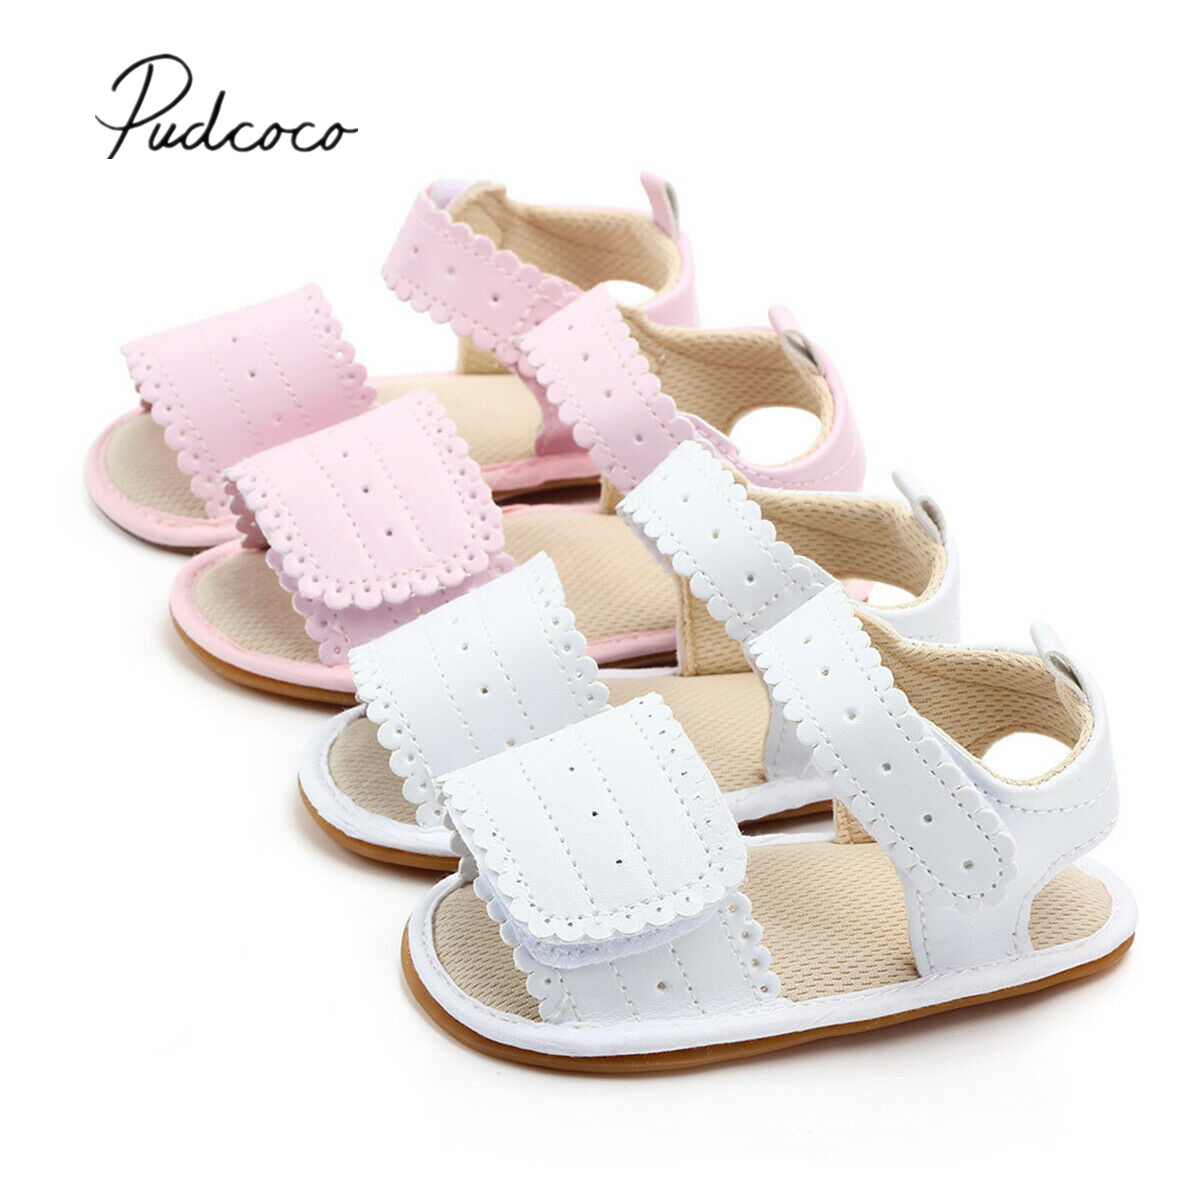 Newborn Infants Kids Baby Girls Soft Crib Sole Barefoot Gladiator Sandals Shoes